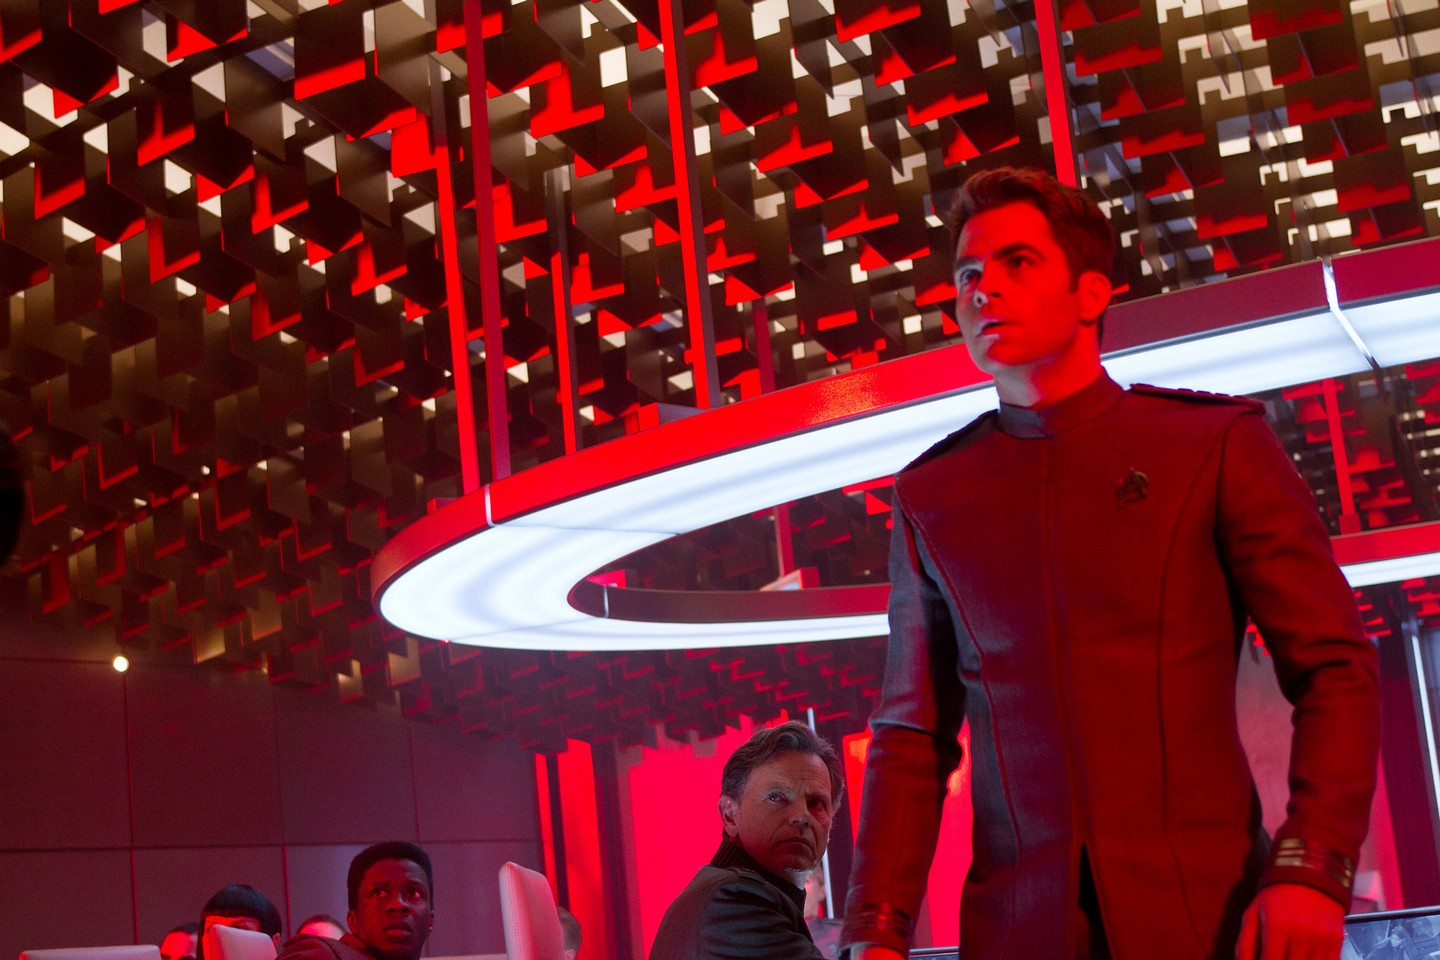 Chris Pine as Captain Kirk with Bruce Greenwood as Admiral Pike in the background in Star Trek Into Darkness